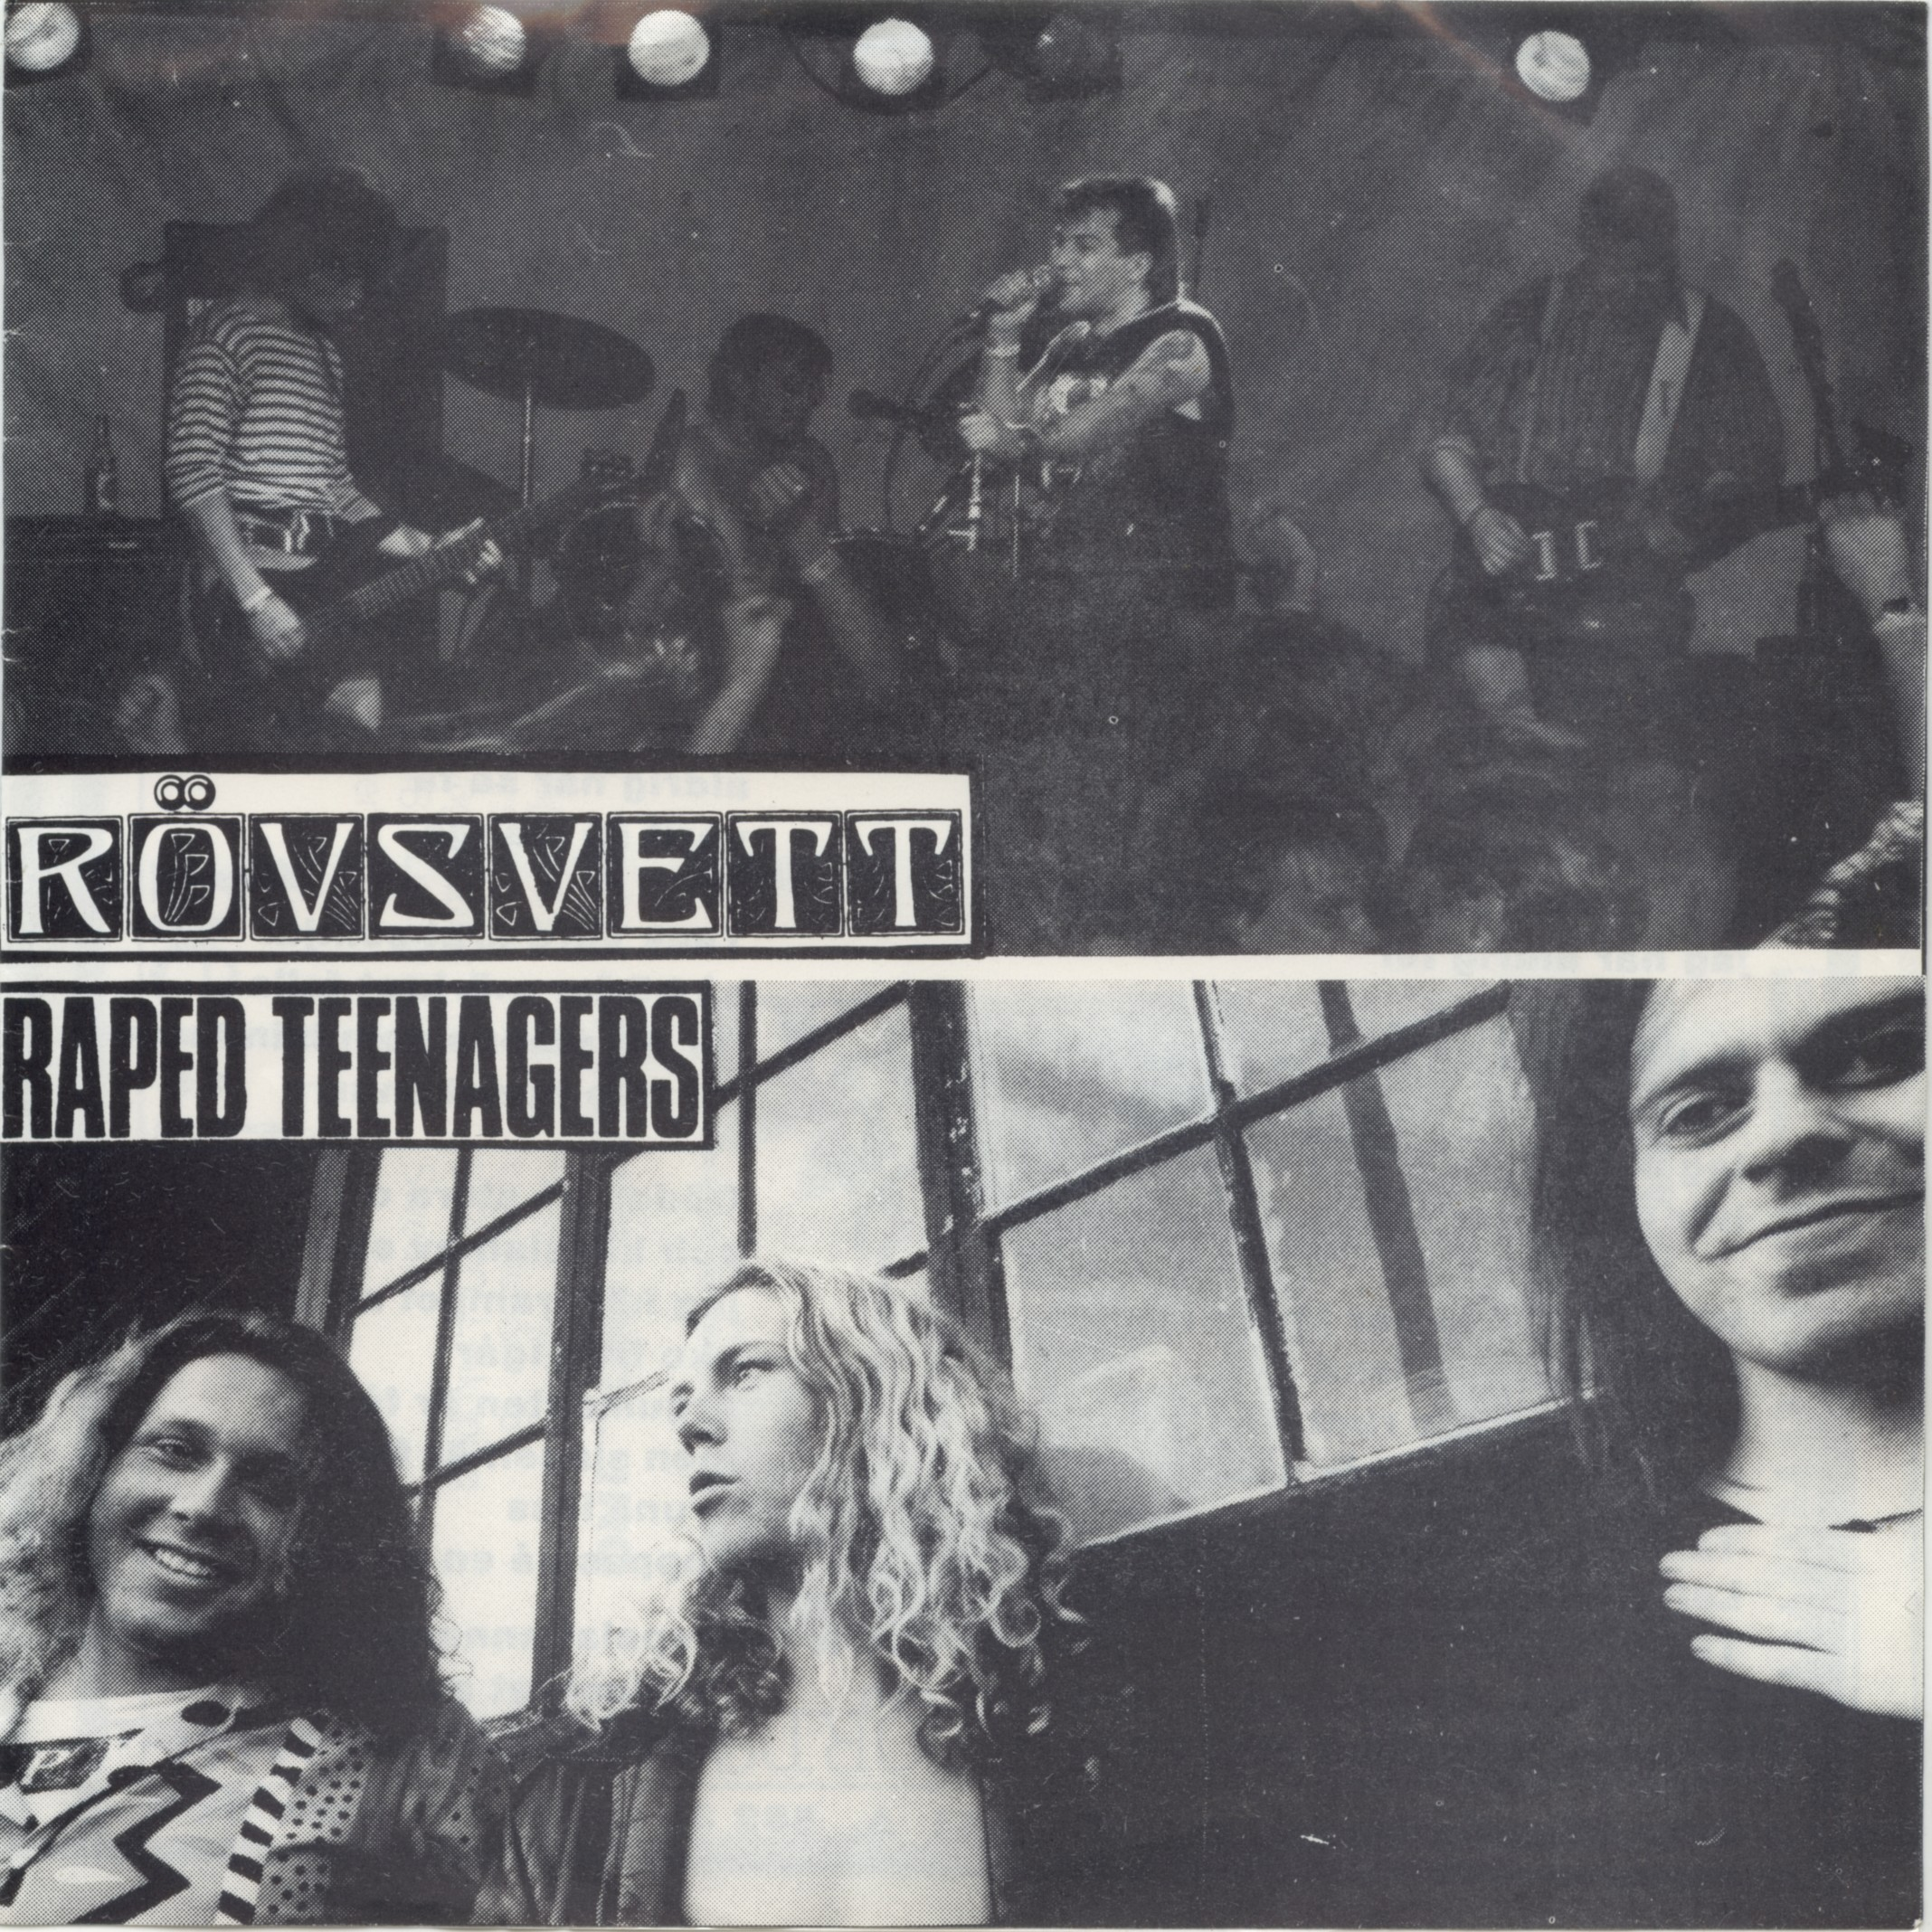 Rövsvett, Raped Teenagers - Rövsvett / Raped Teenagers - 1990